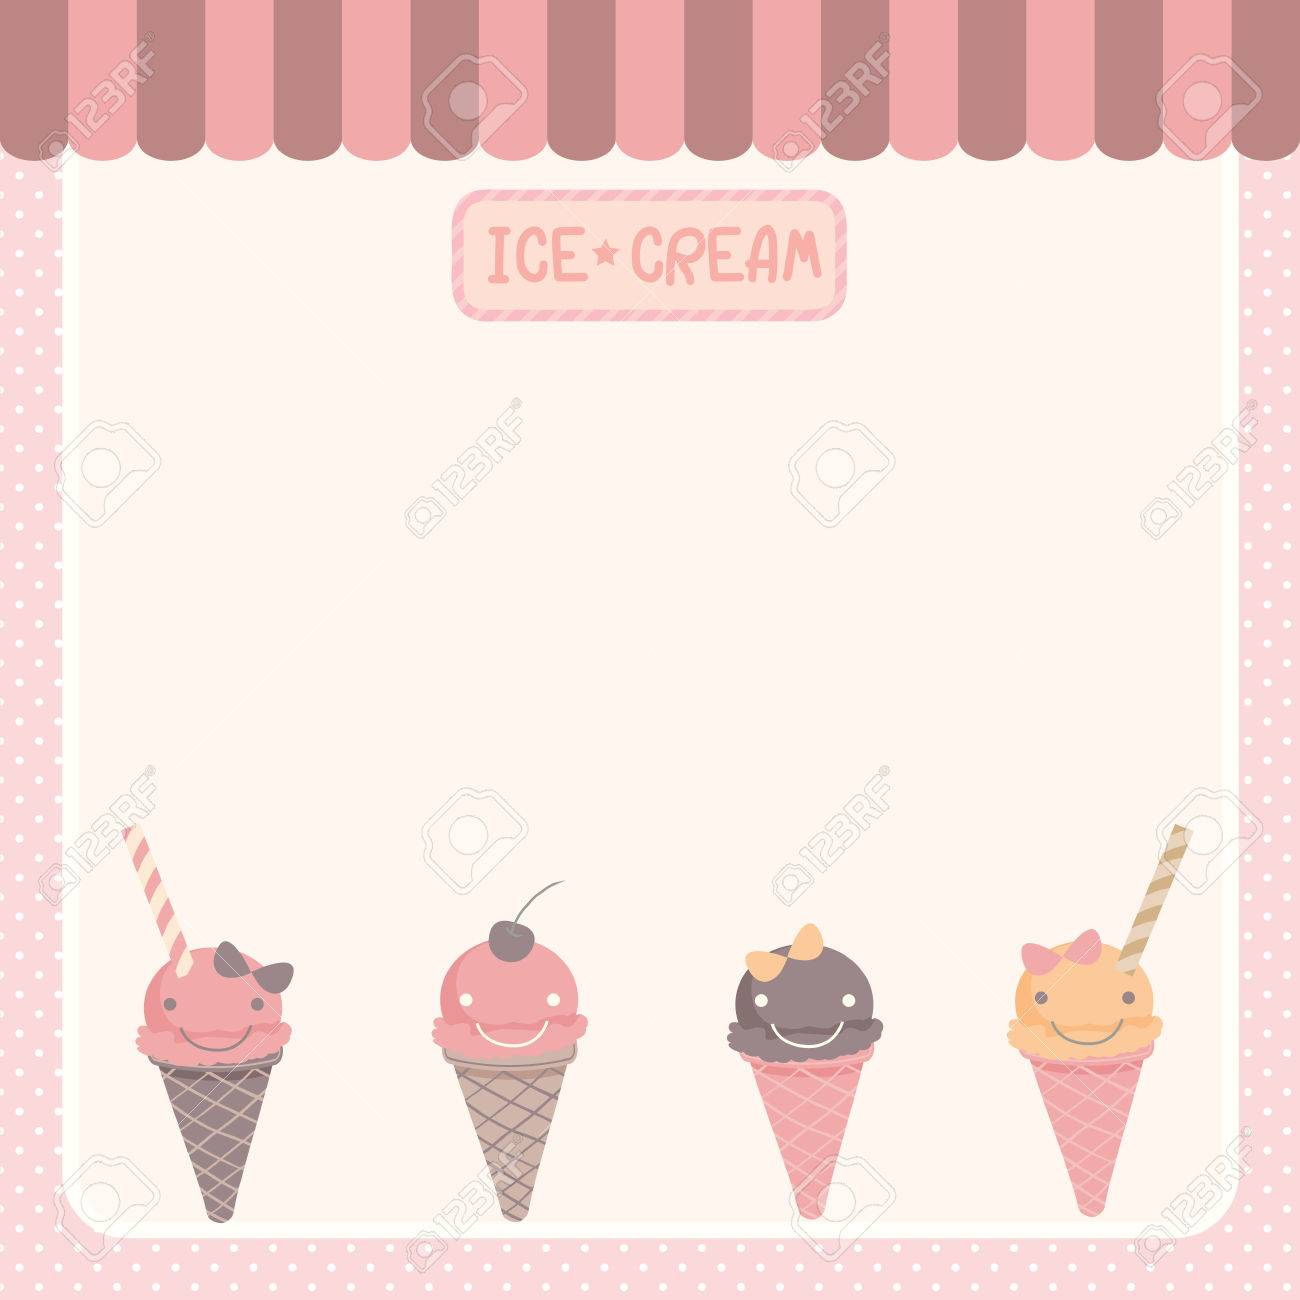 illustration vector of cute ice cream various flavors blank